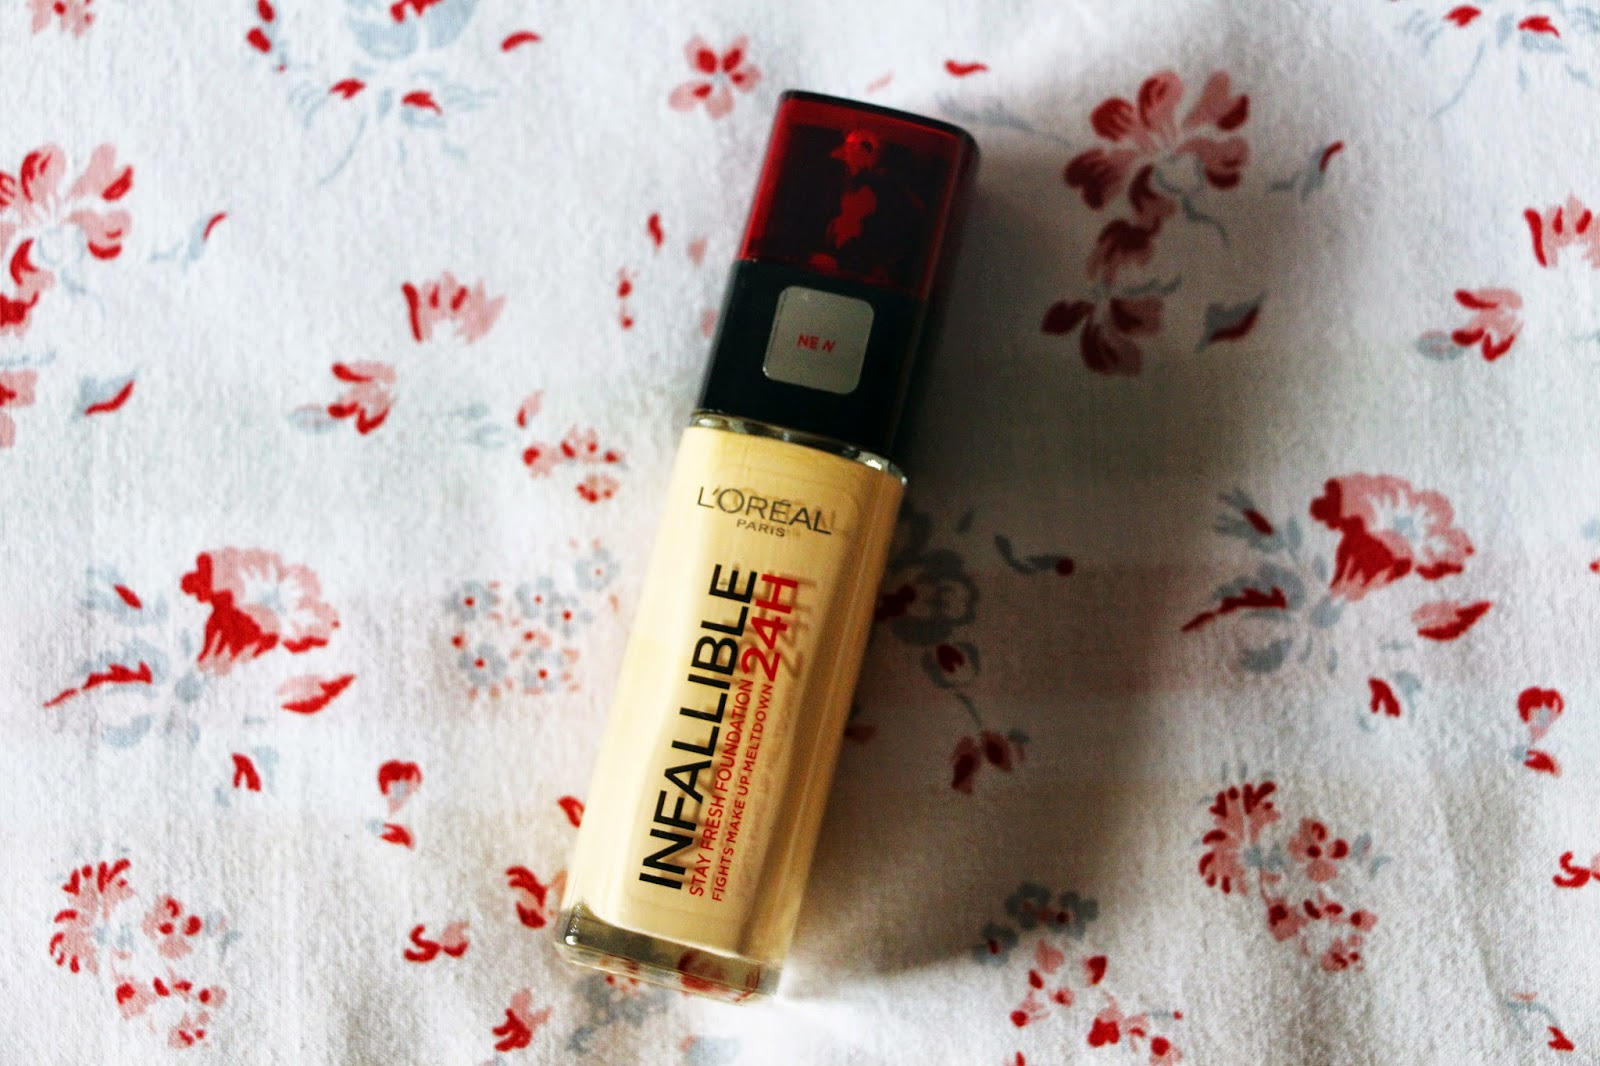 L'oreal Paris Infallible Stay Fresh Foundation Review